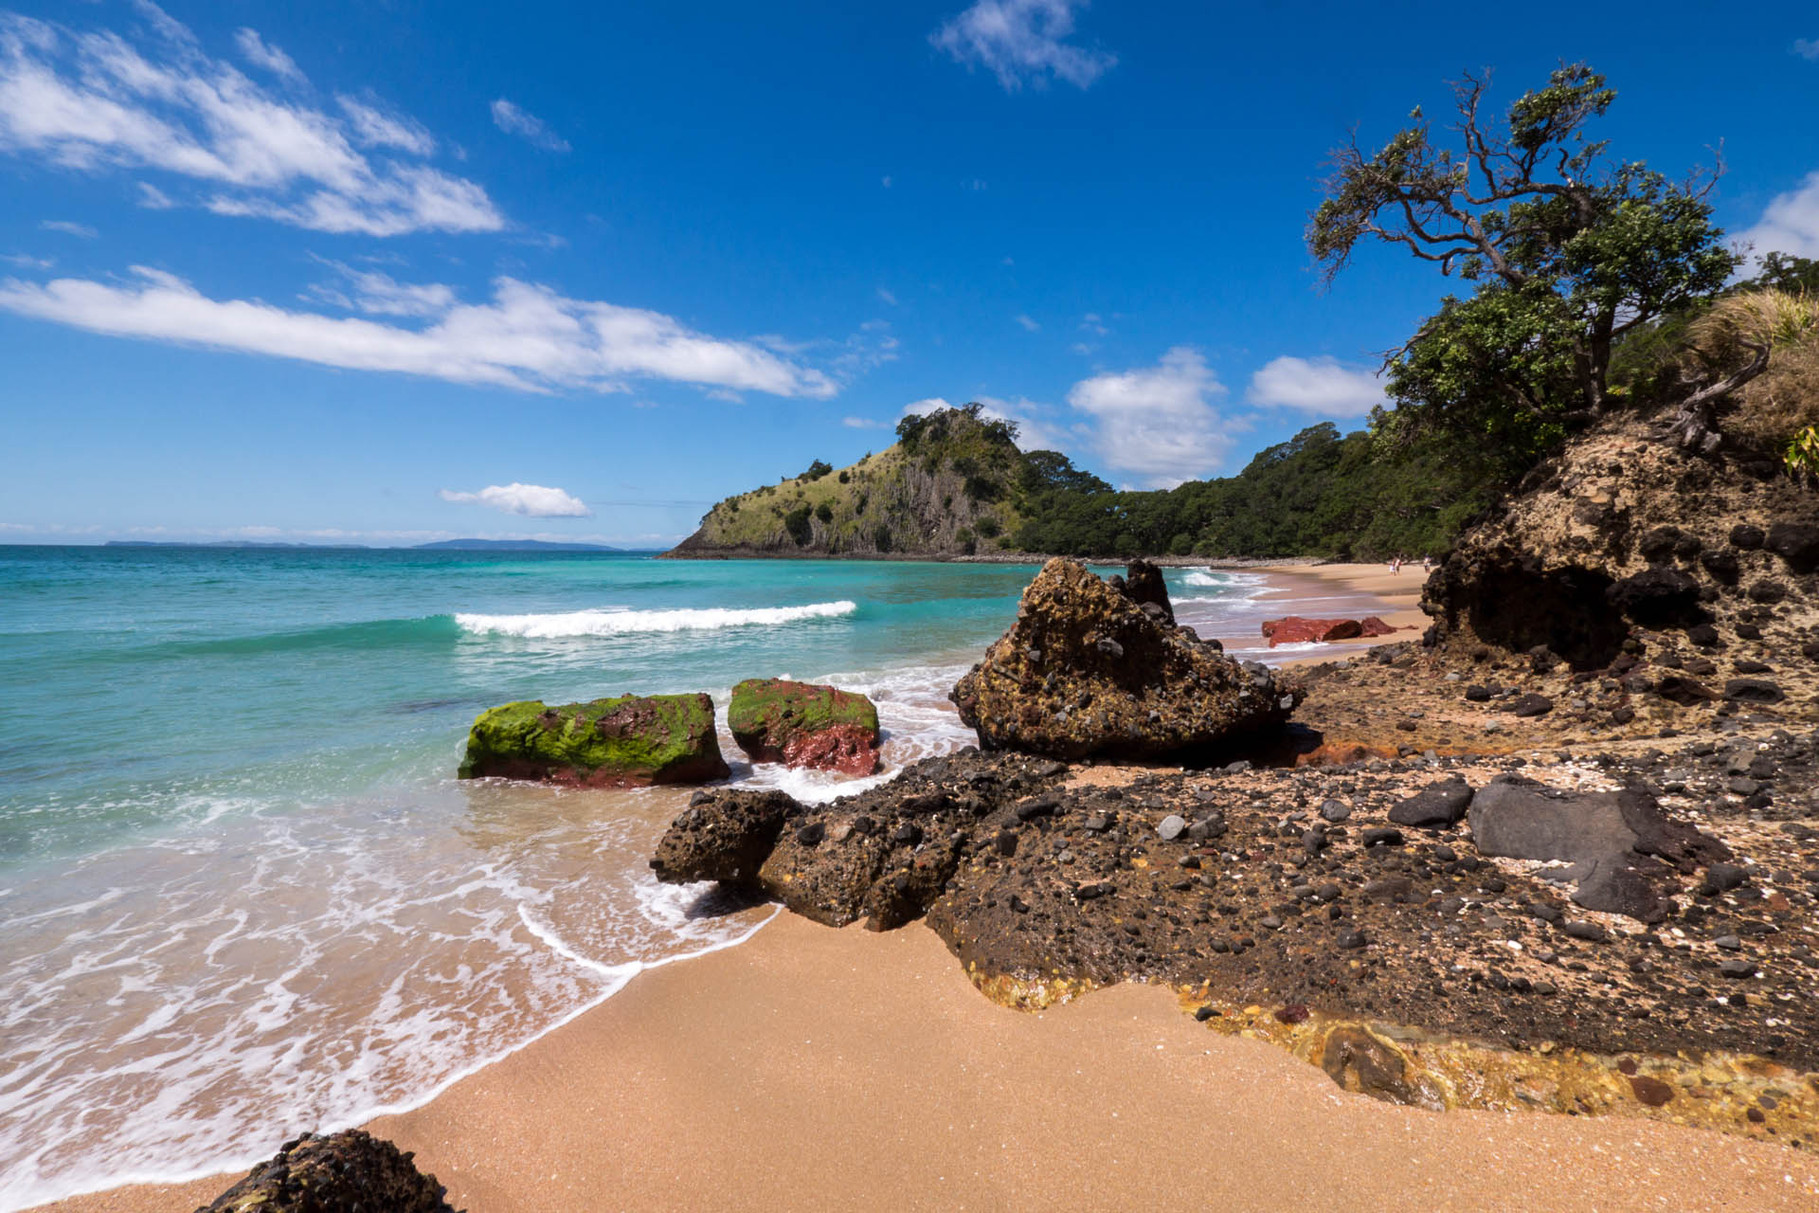 New Chums Beach, Coromandel Peninsula